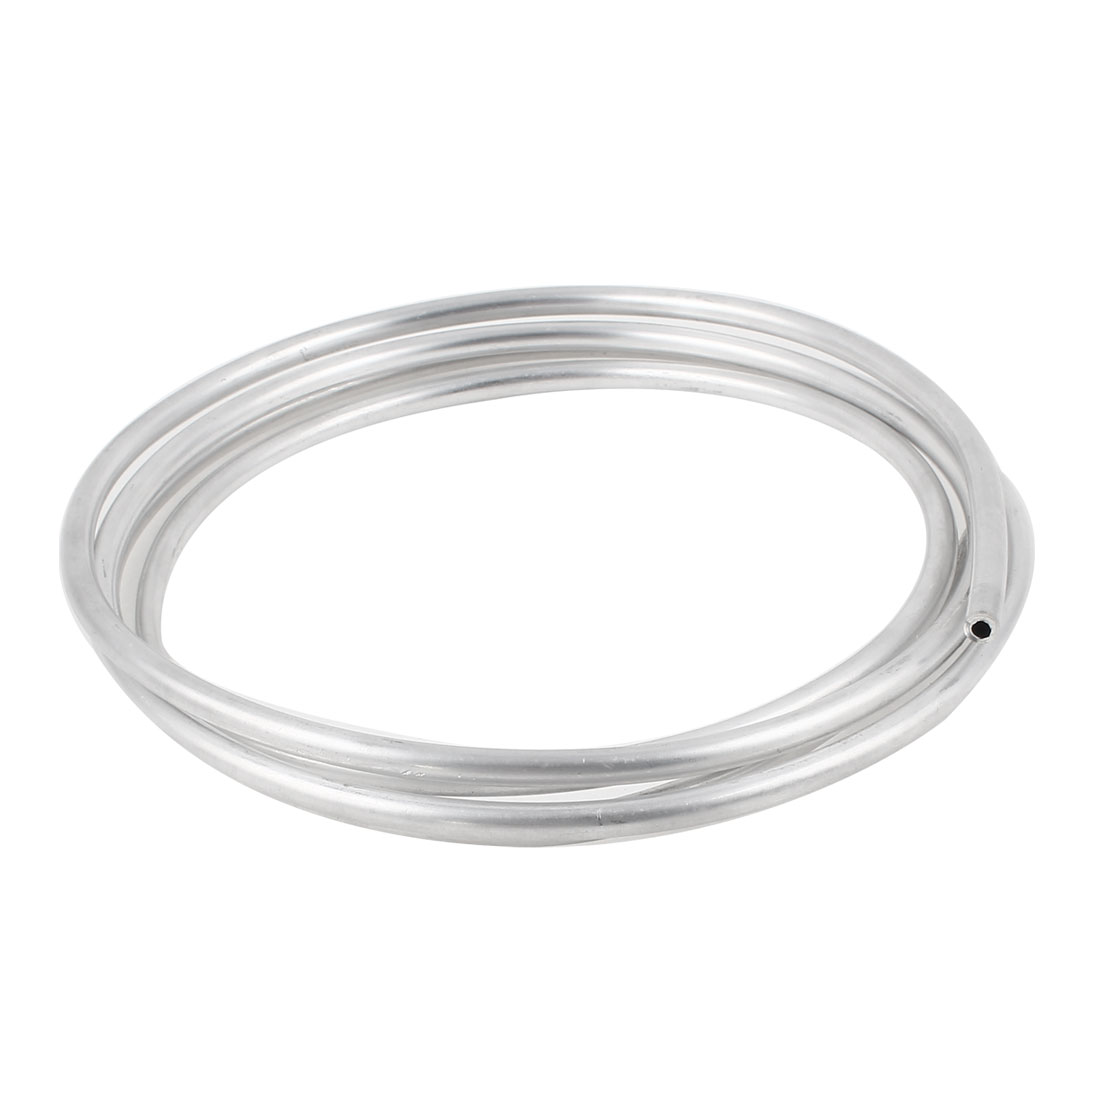 Silver Tone 3.5mm Diameter Hole 6mm Aluminum Hose Pipe 2 Meters 6.5Ft